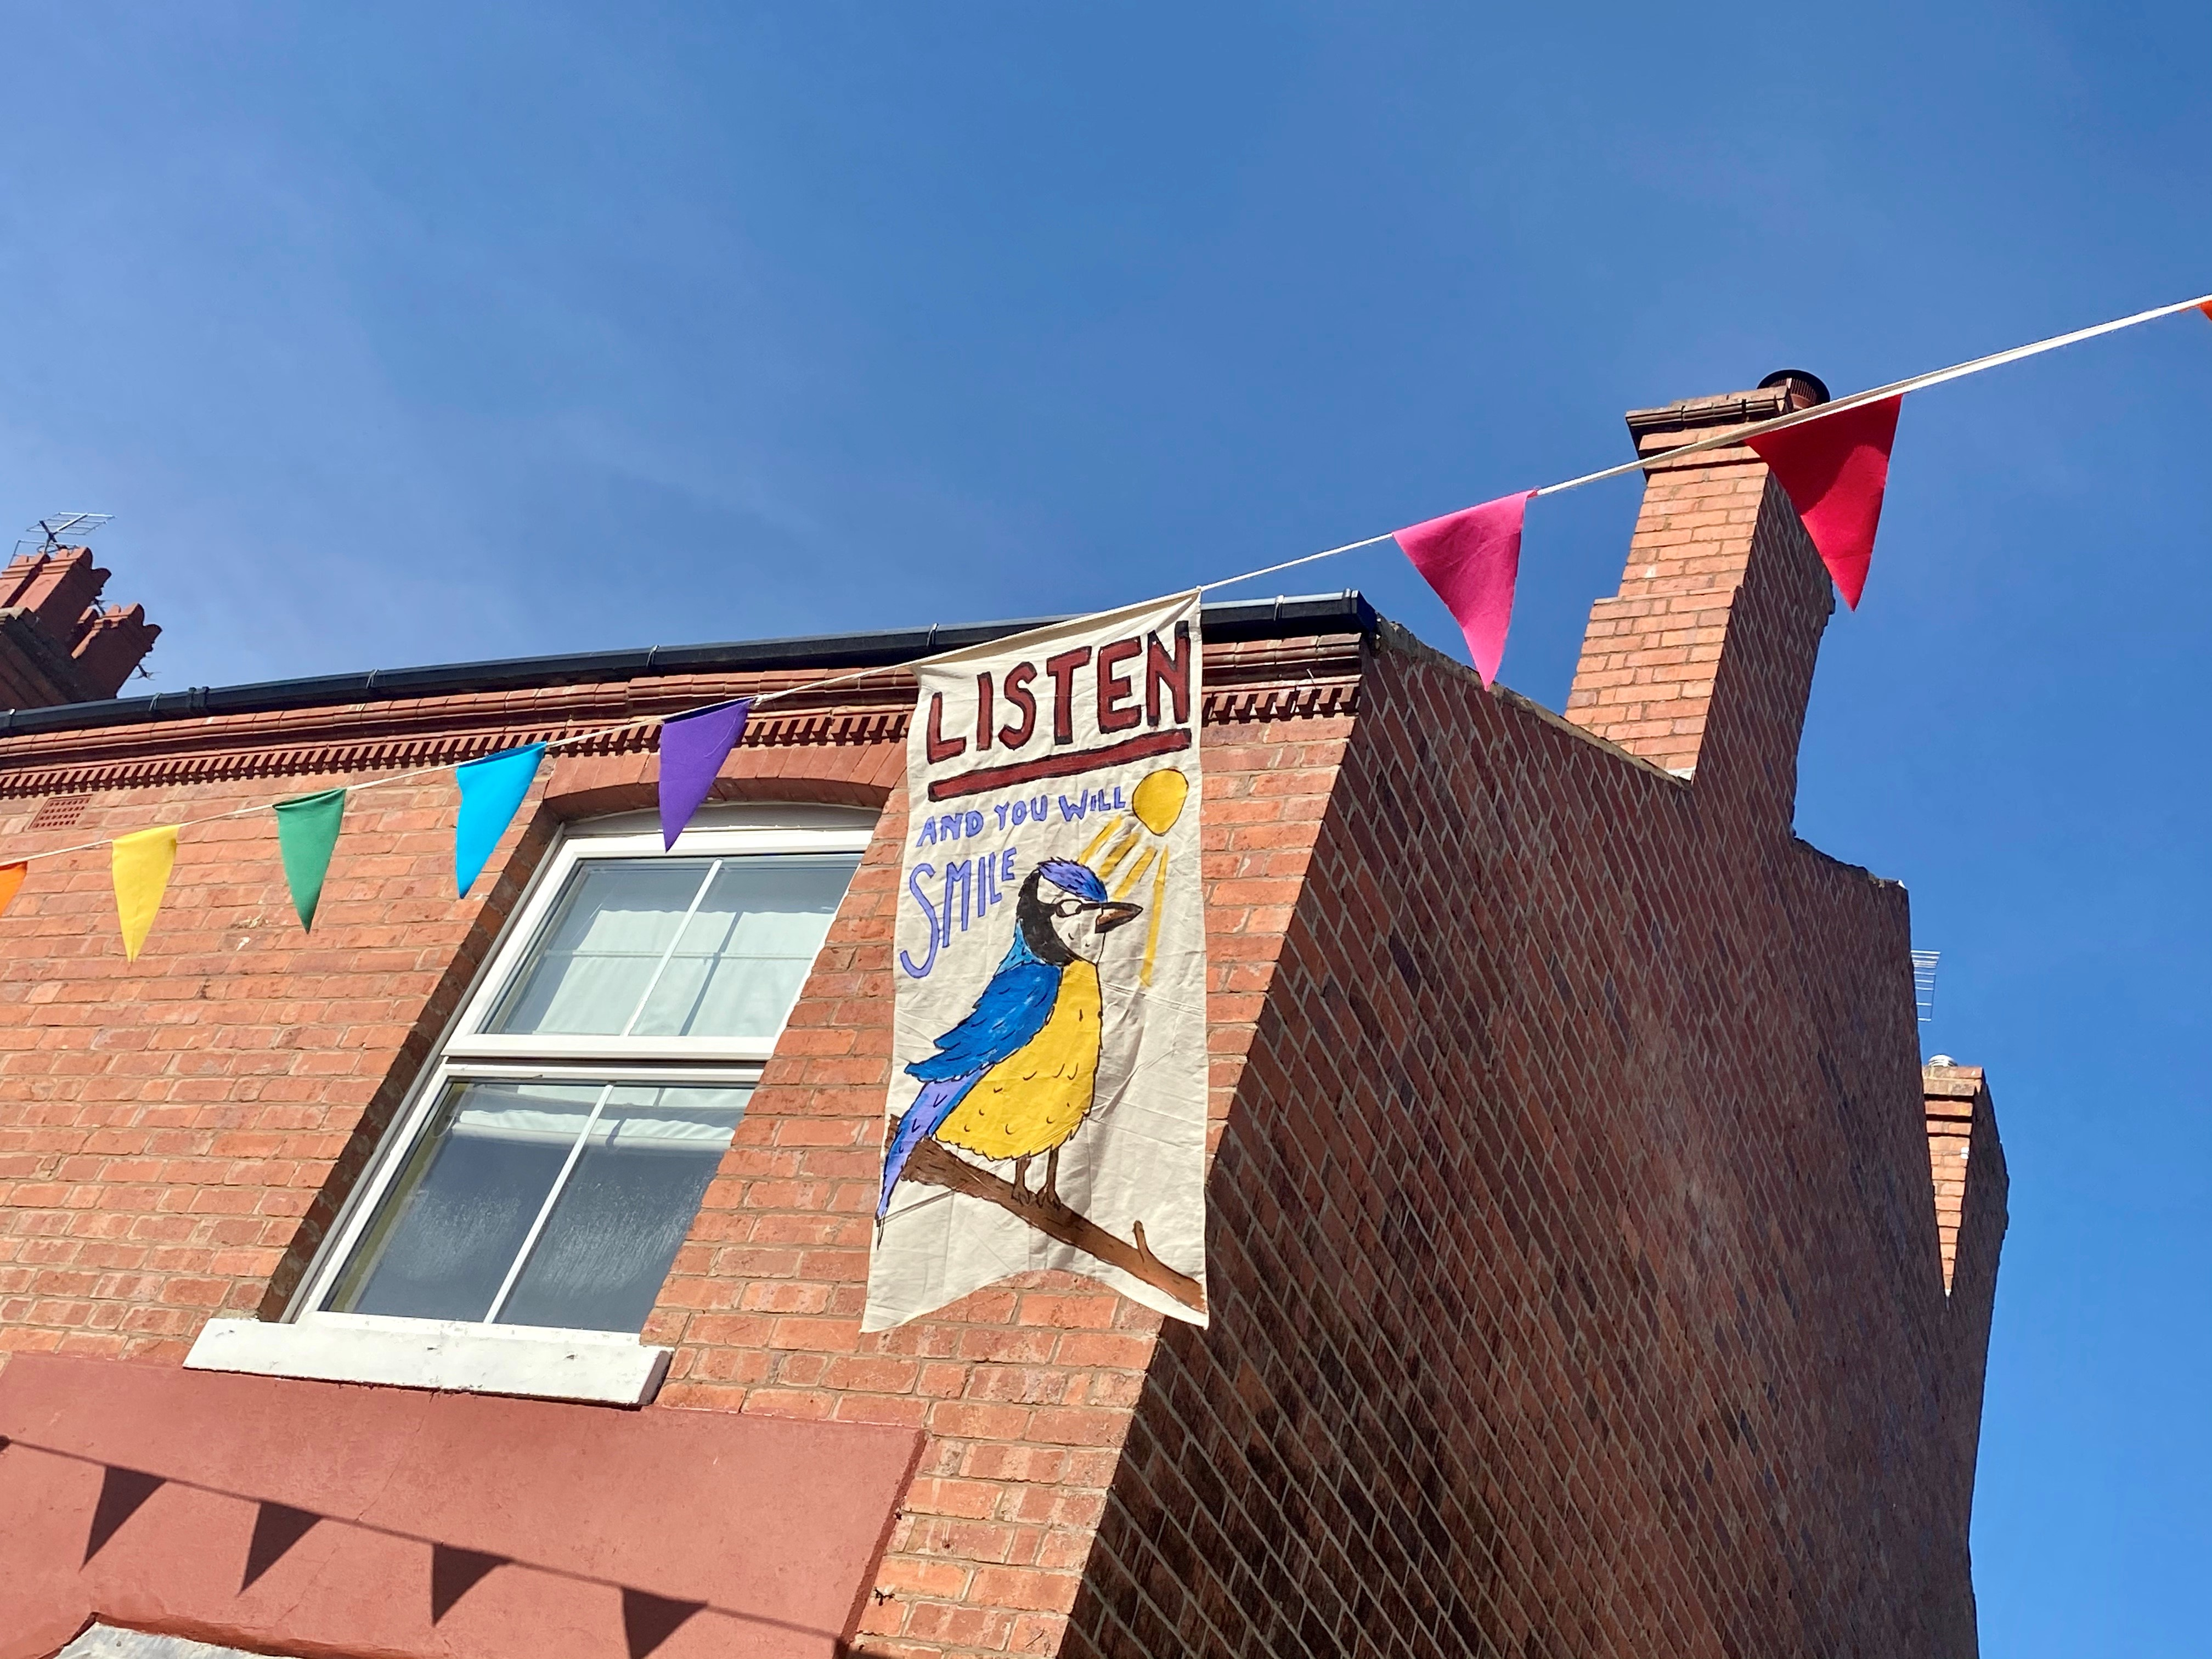 Banner which says Listen and you will Smile with a blue bird